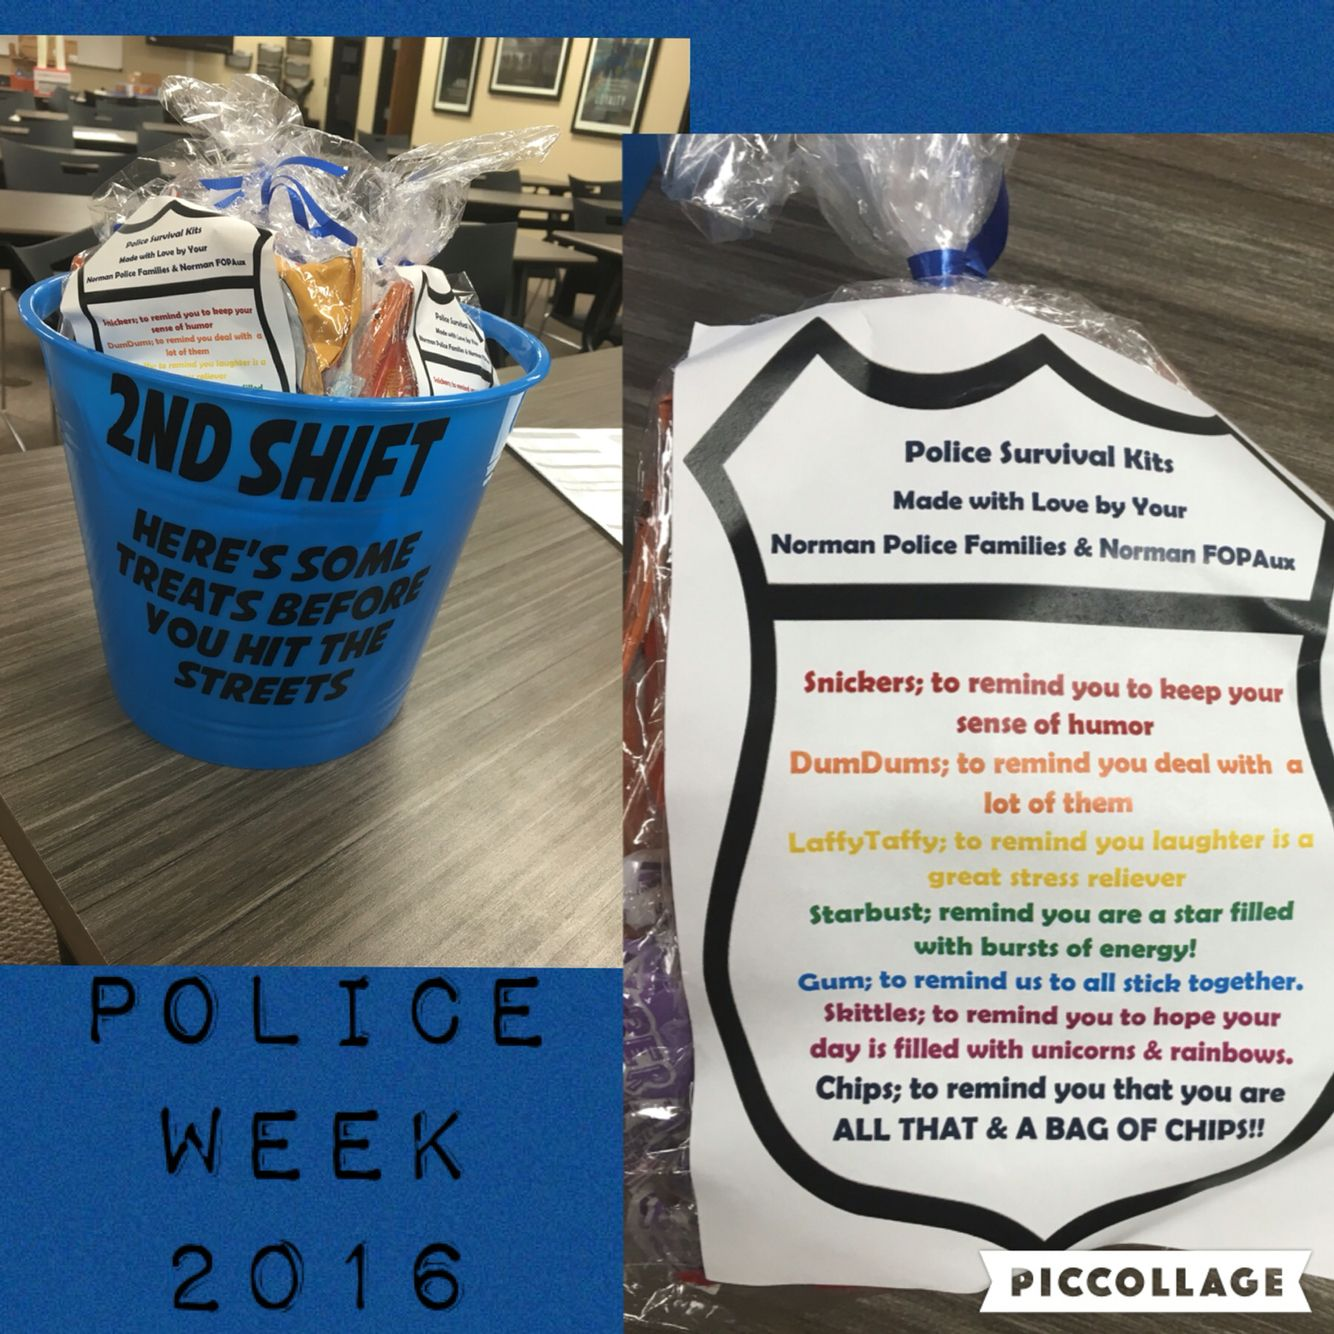 Police Survival Kits police Week ideas Thank a Police